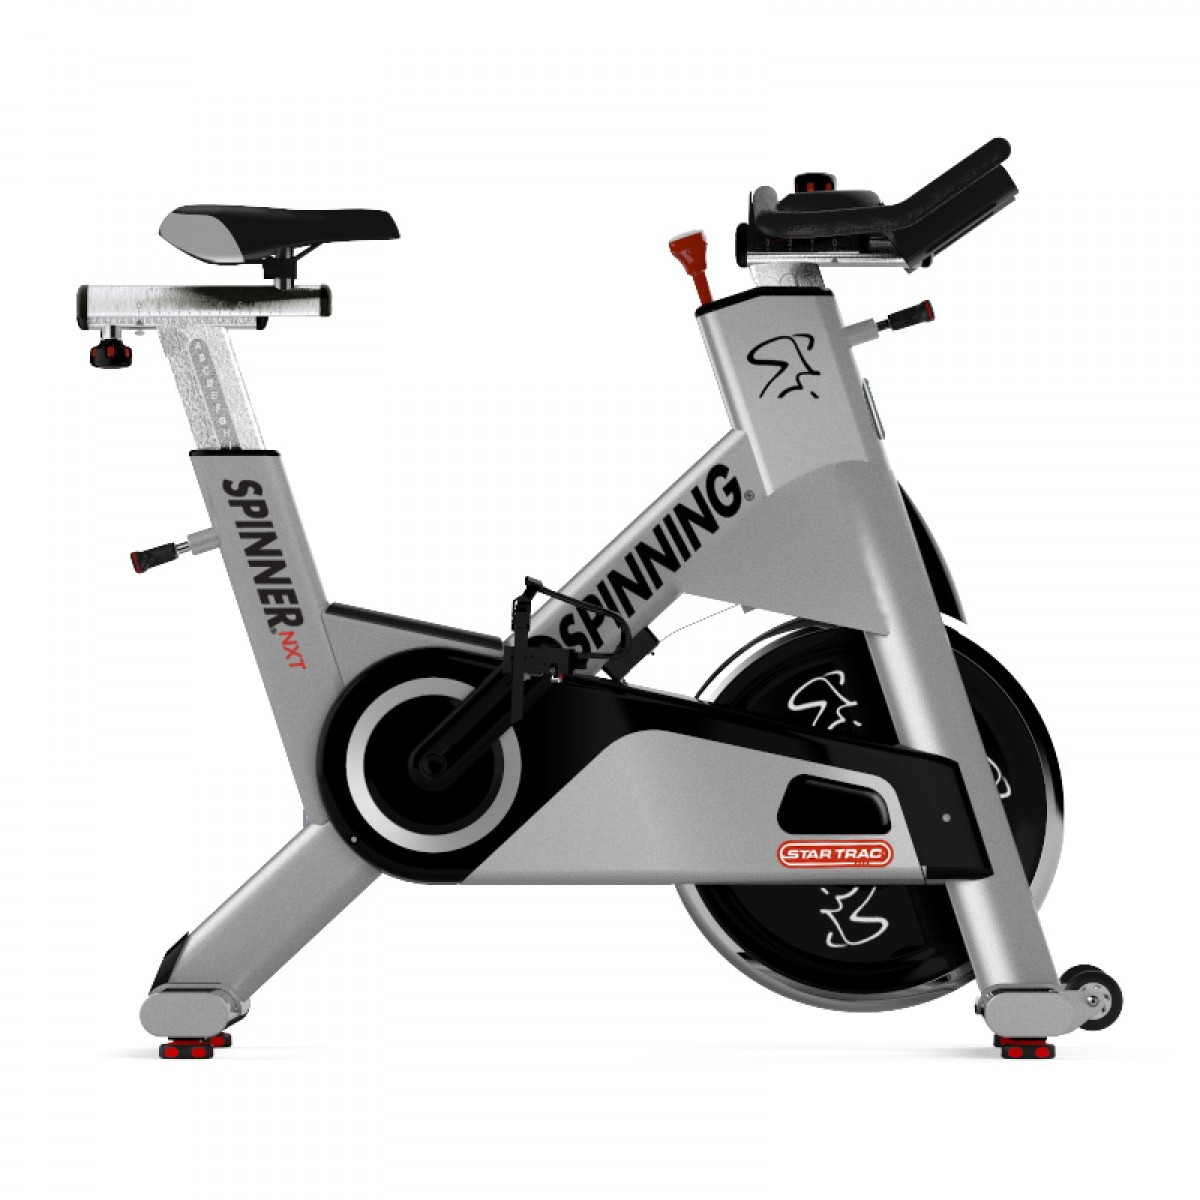 Star-Trac-NXT-spinning-bike